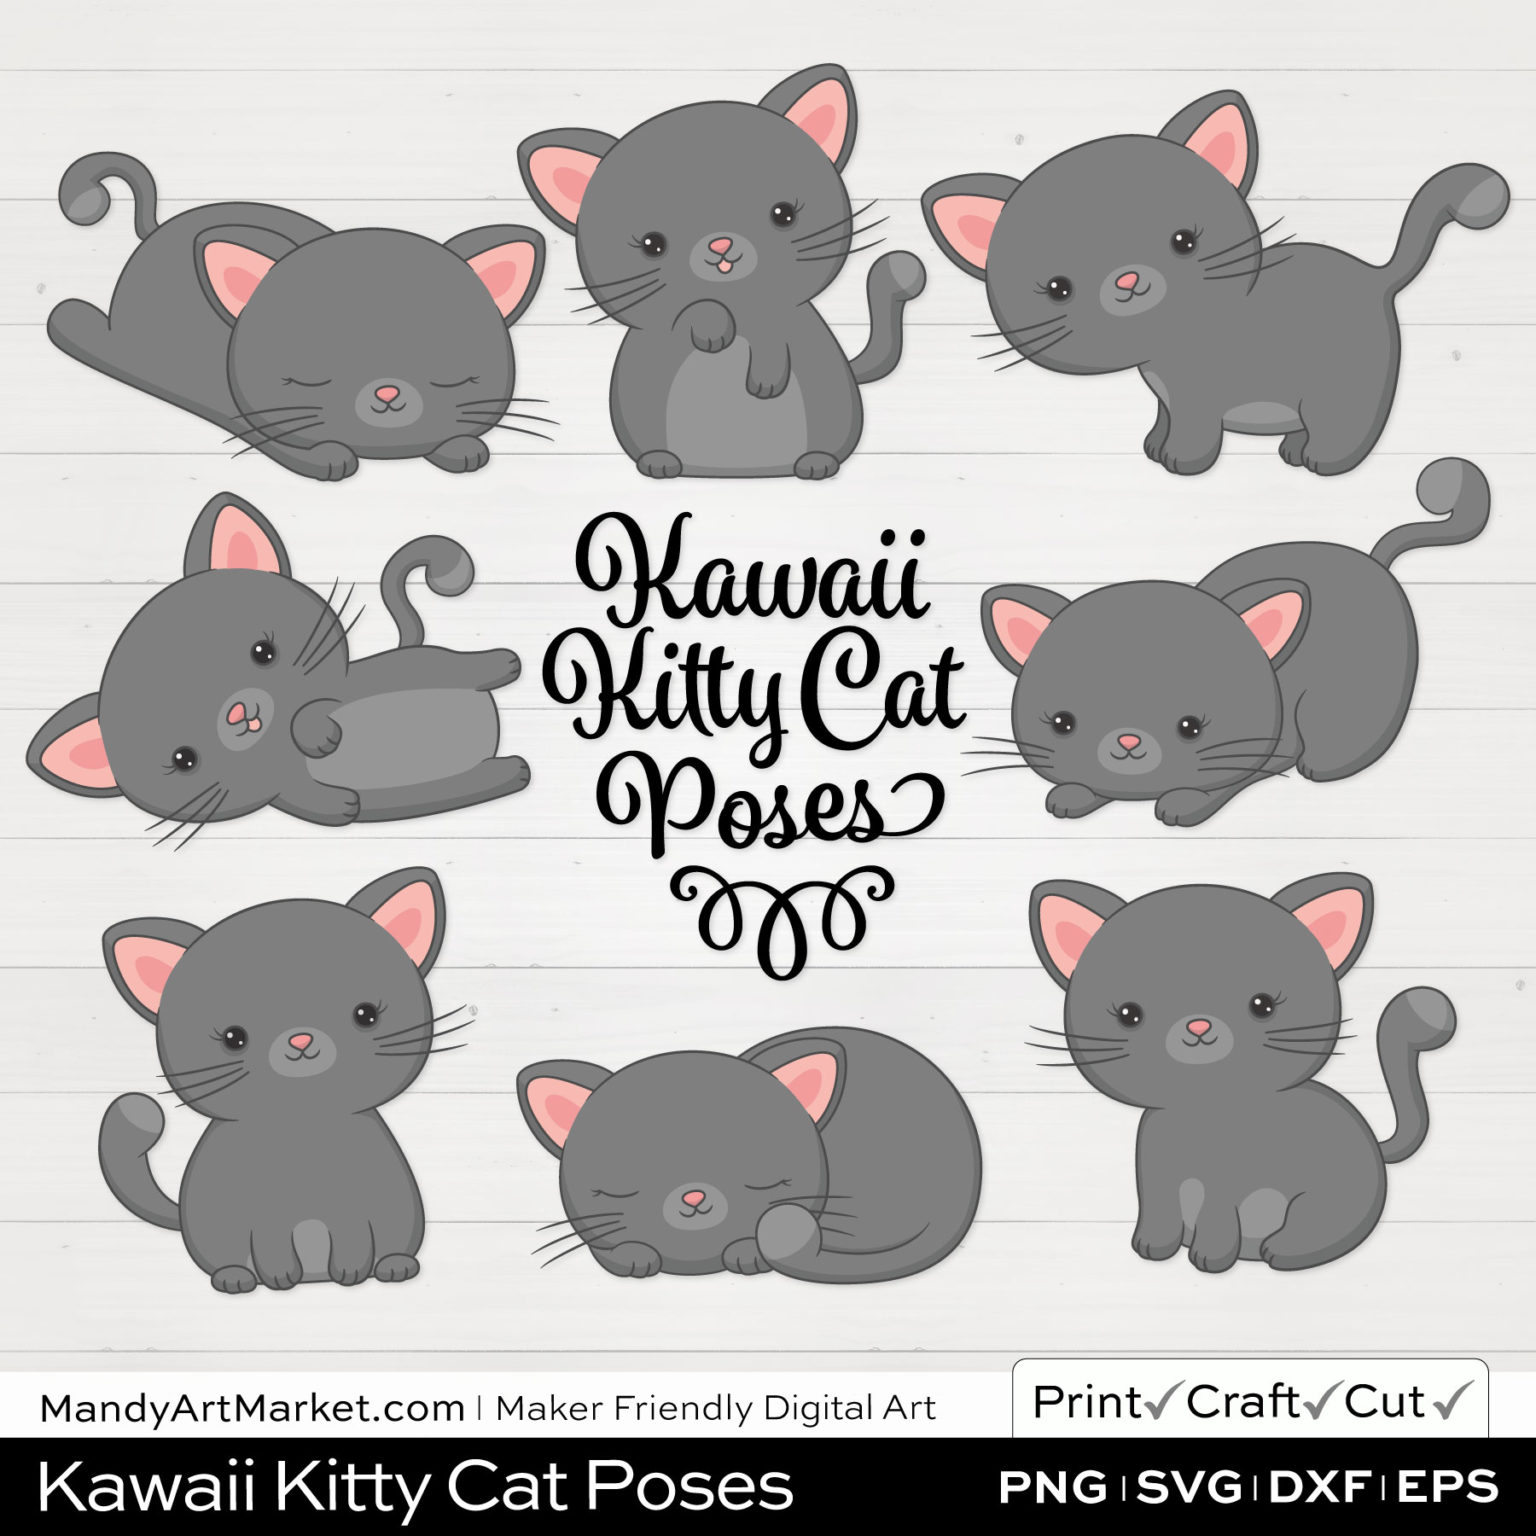 Pebble Gray Kawaii Kitty Cat Poses Clipart on White Background